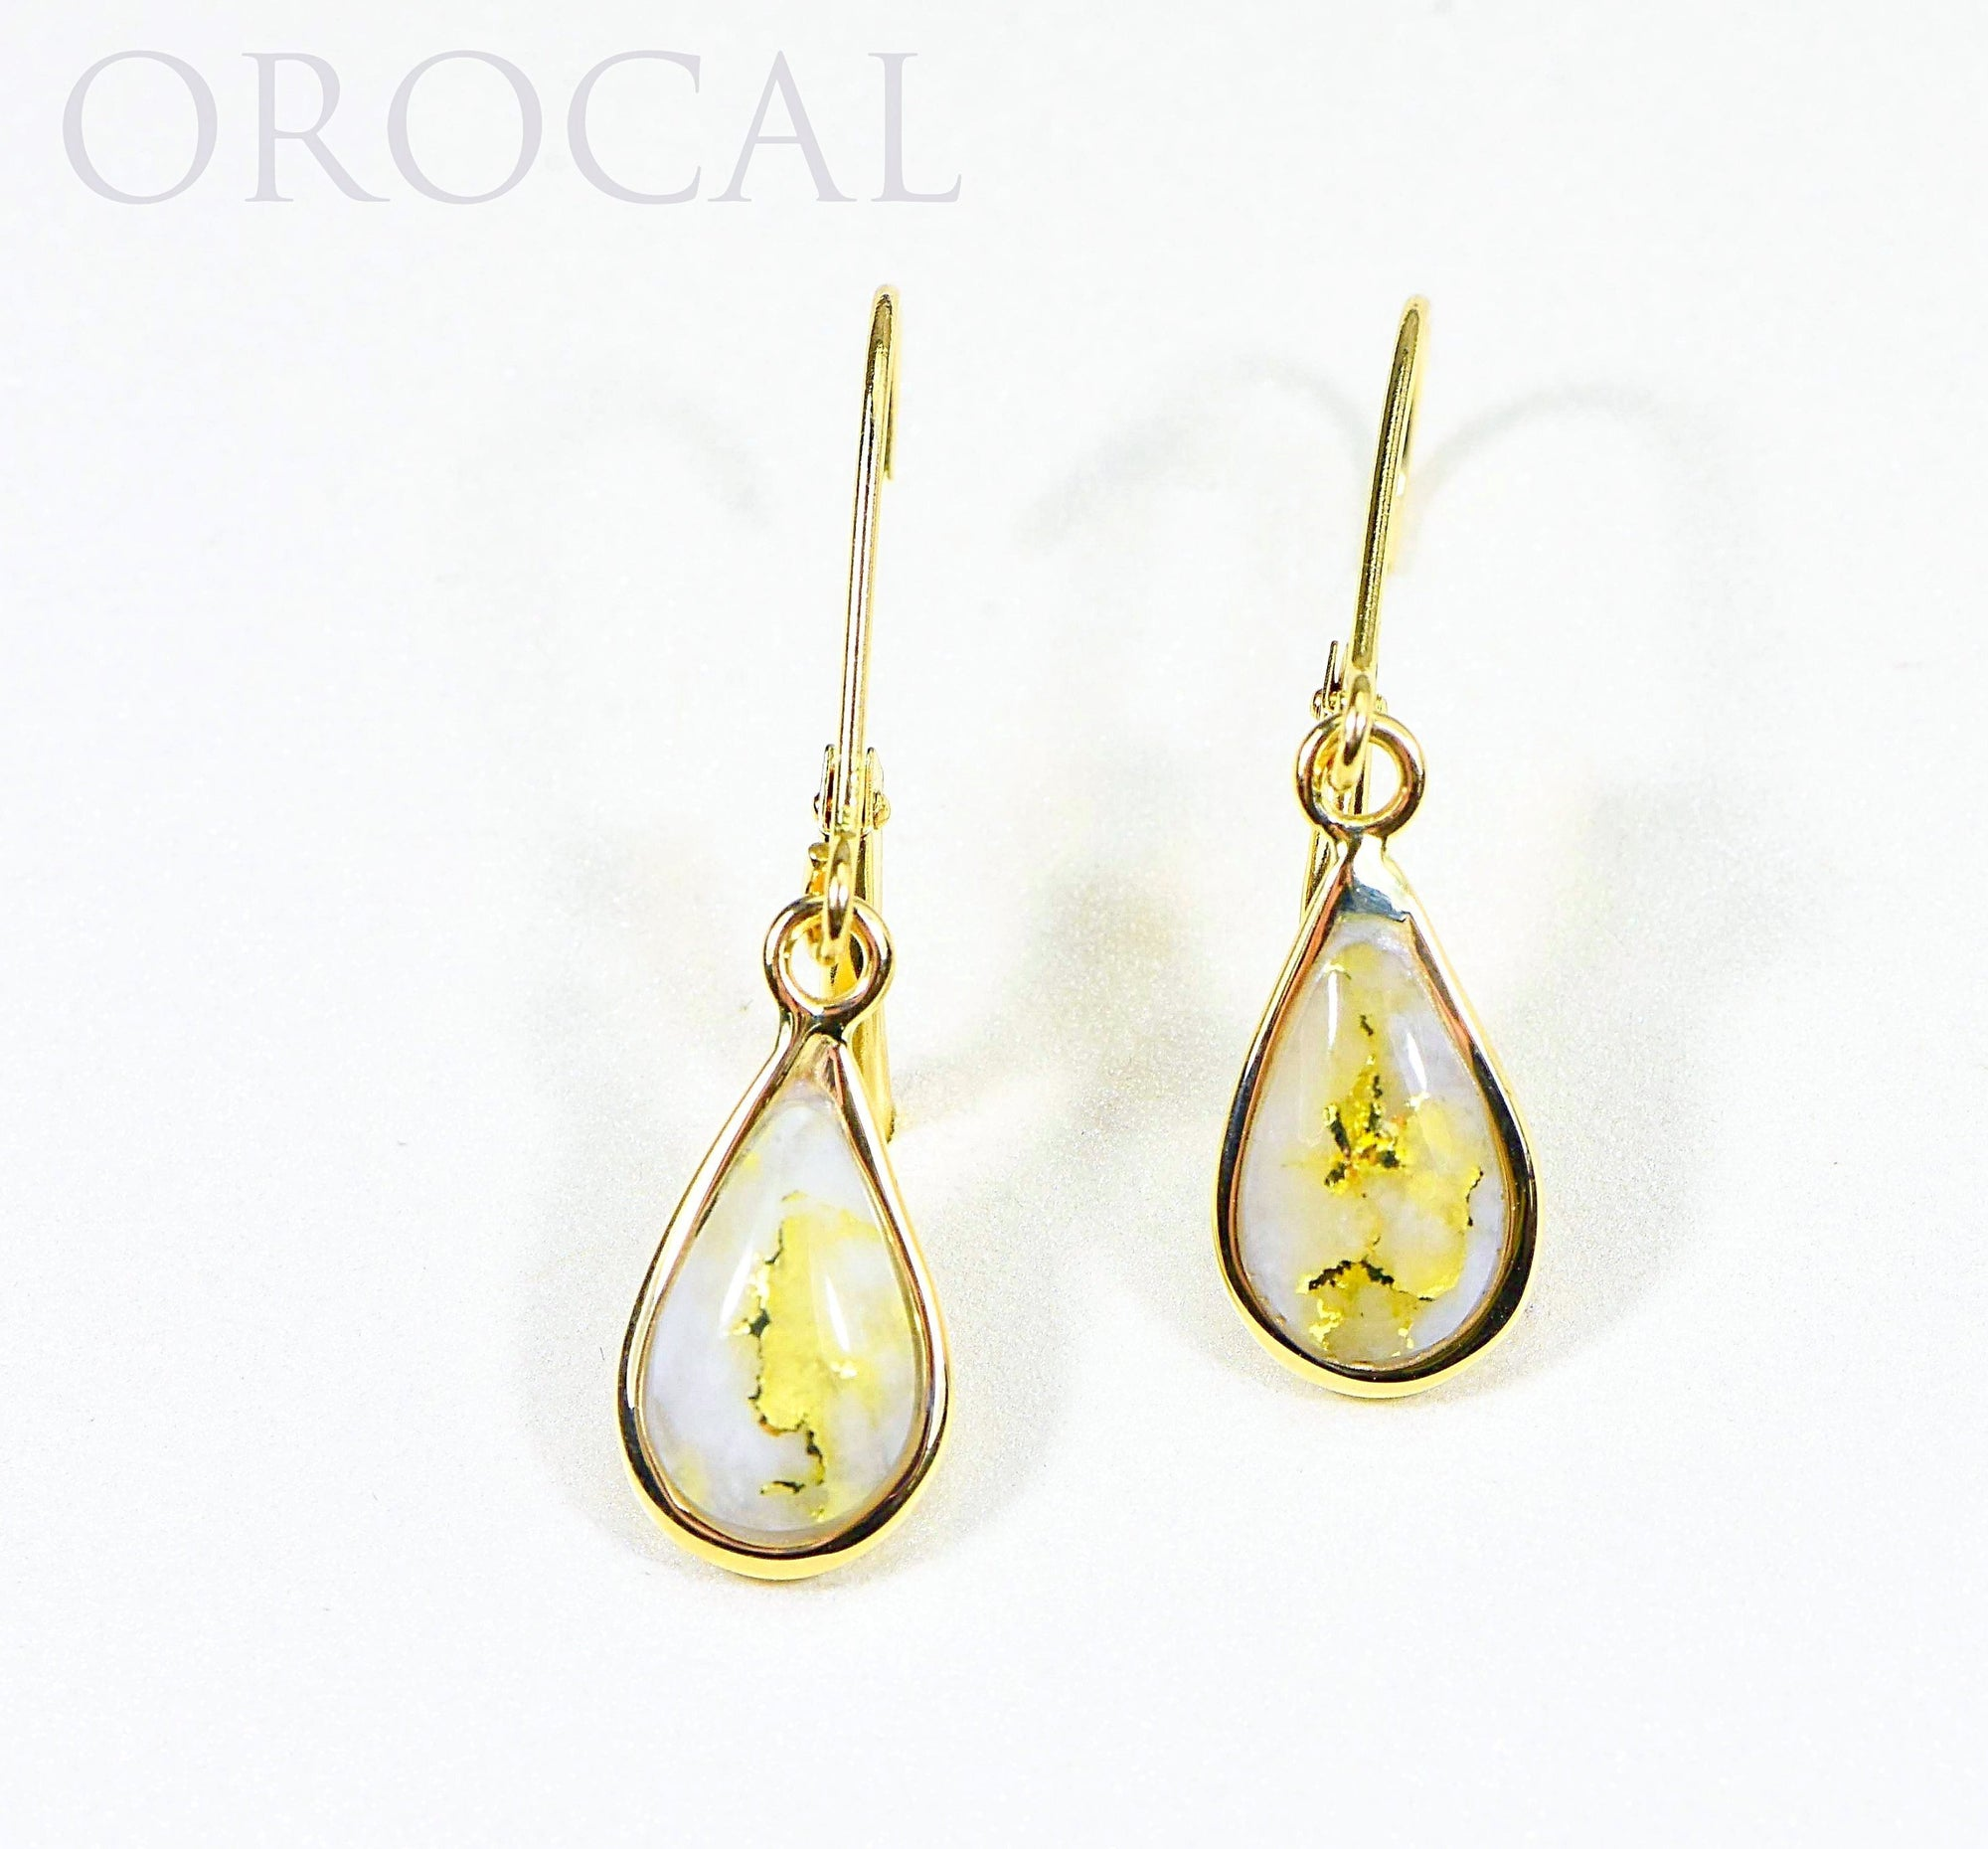 "Gold Quartz Earrings ""Orocal"" EN433Q/LB Genuine Hand Crafted Jewelry - 14K Gold Casting"